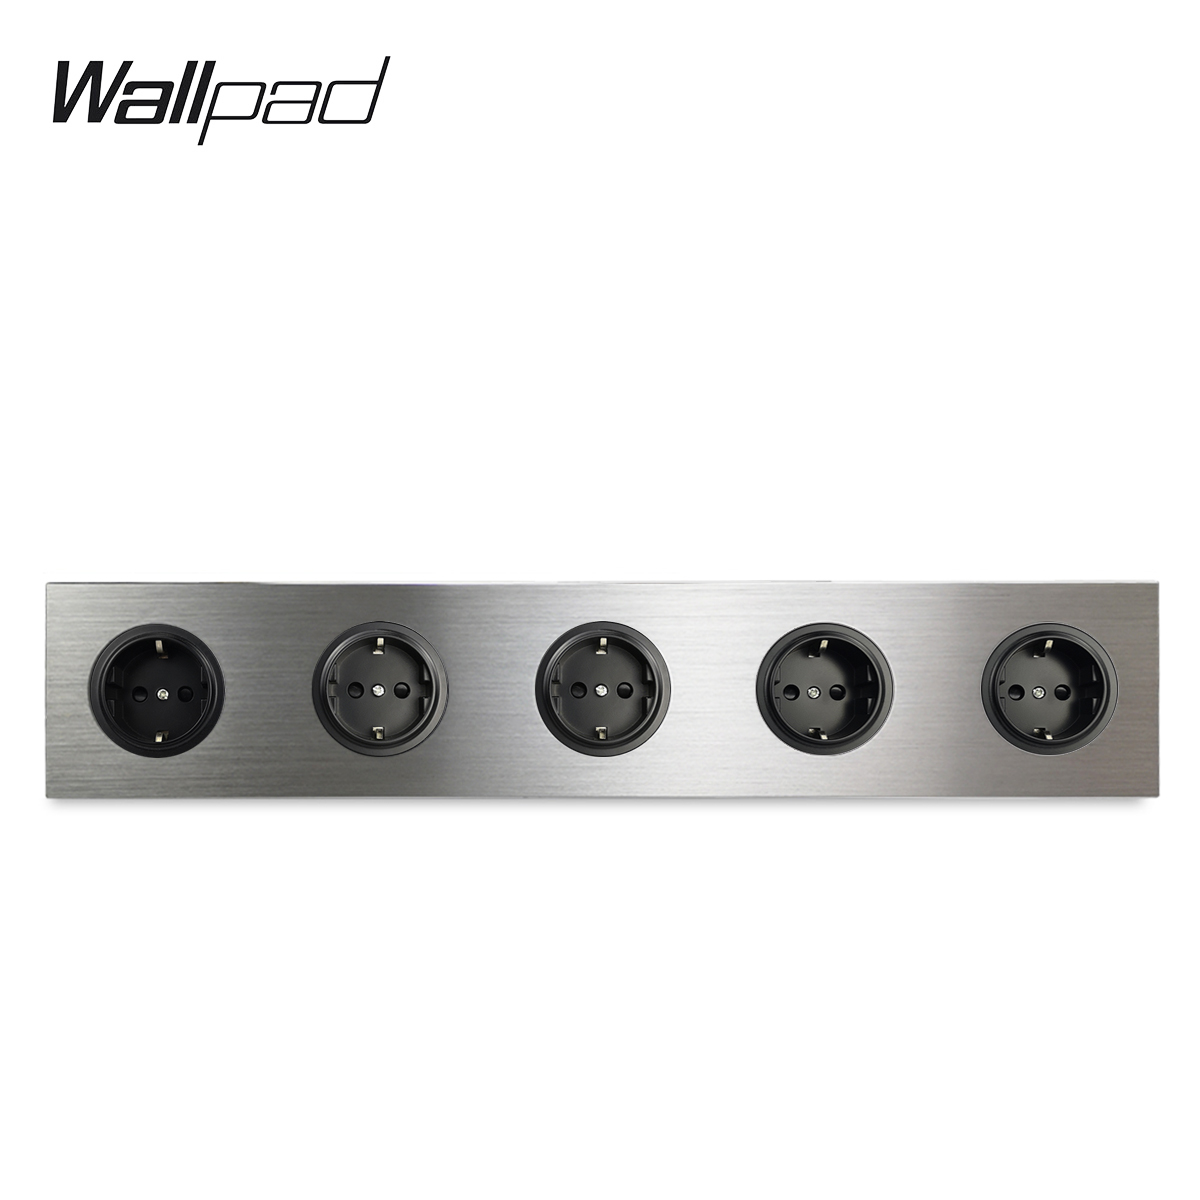 Wallpad 5 Gang Frame Quintuple EU Wall Electric Outlet Socket German Plug Silver Satin Brushed Aluminum Alloy Panel  430 * 86 Mm